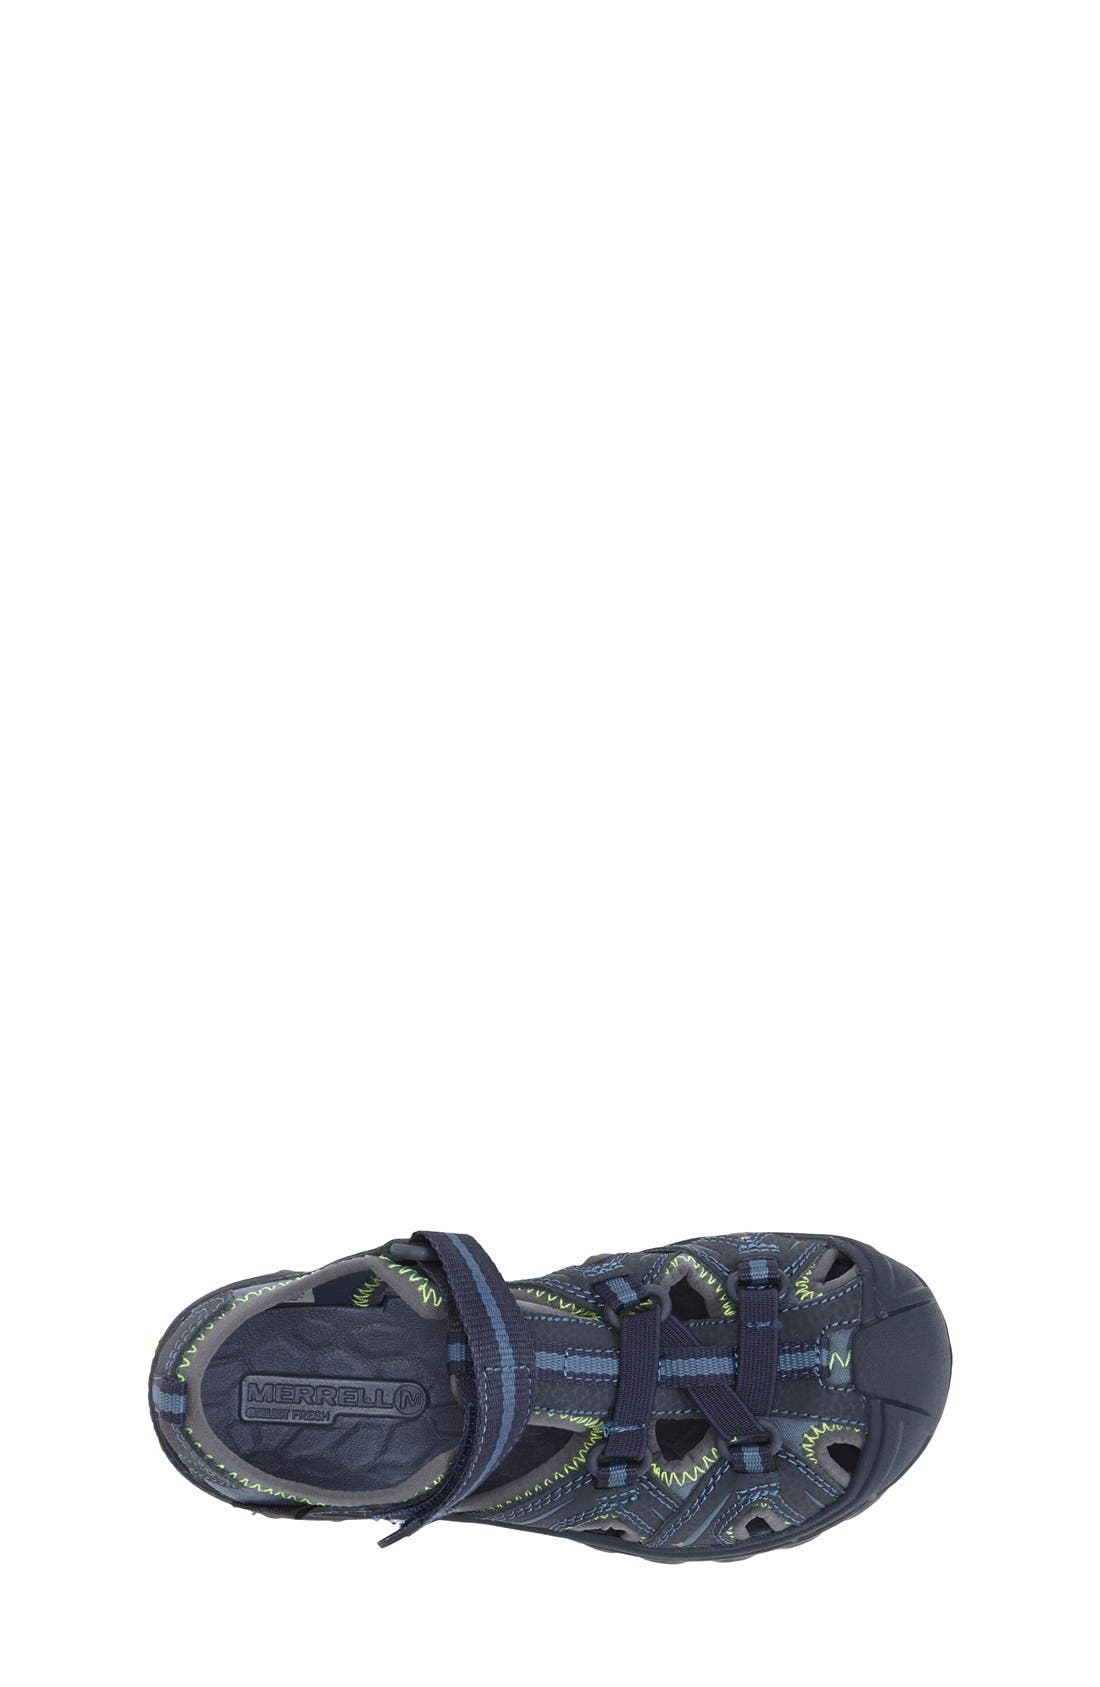 MERRELL, Hydro Water Sandal, Alternate thumbnail 3, color, NAVY/ GREEN